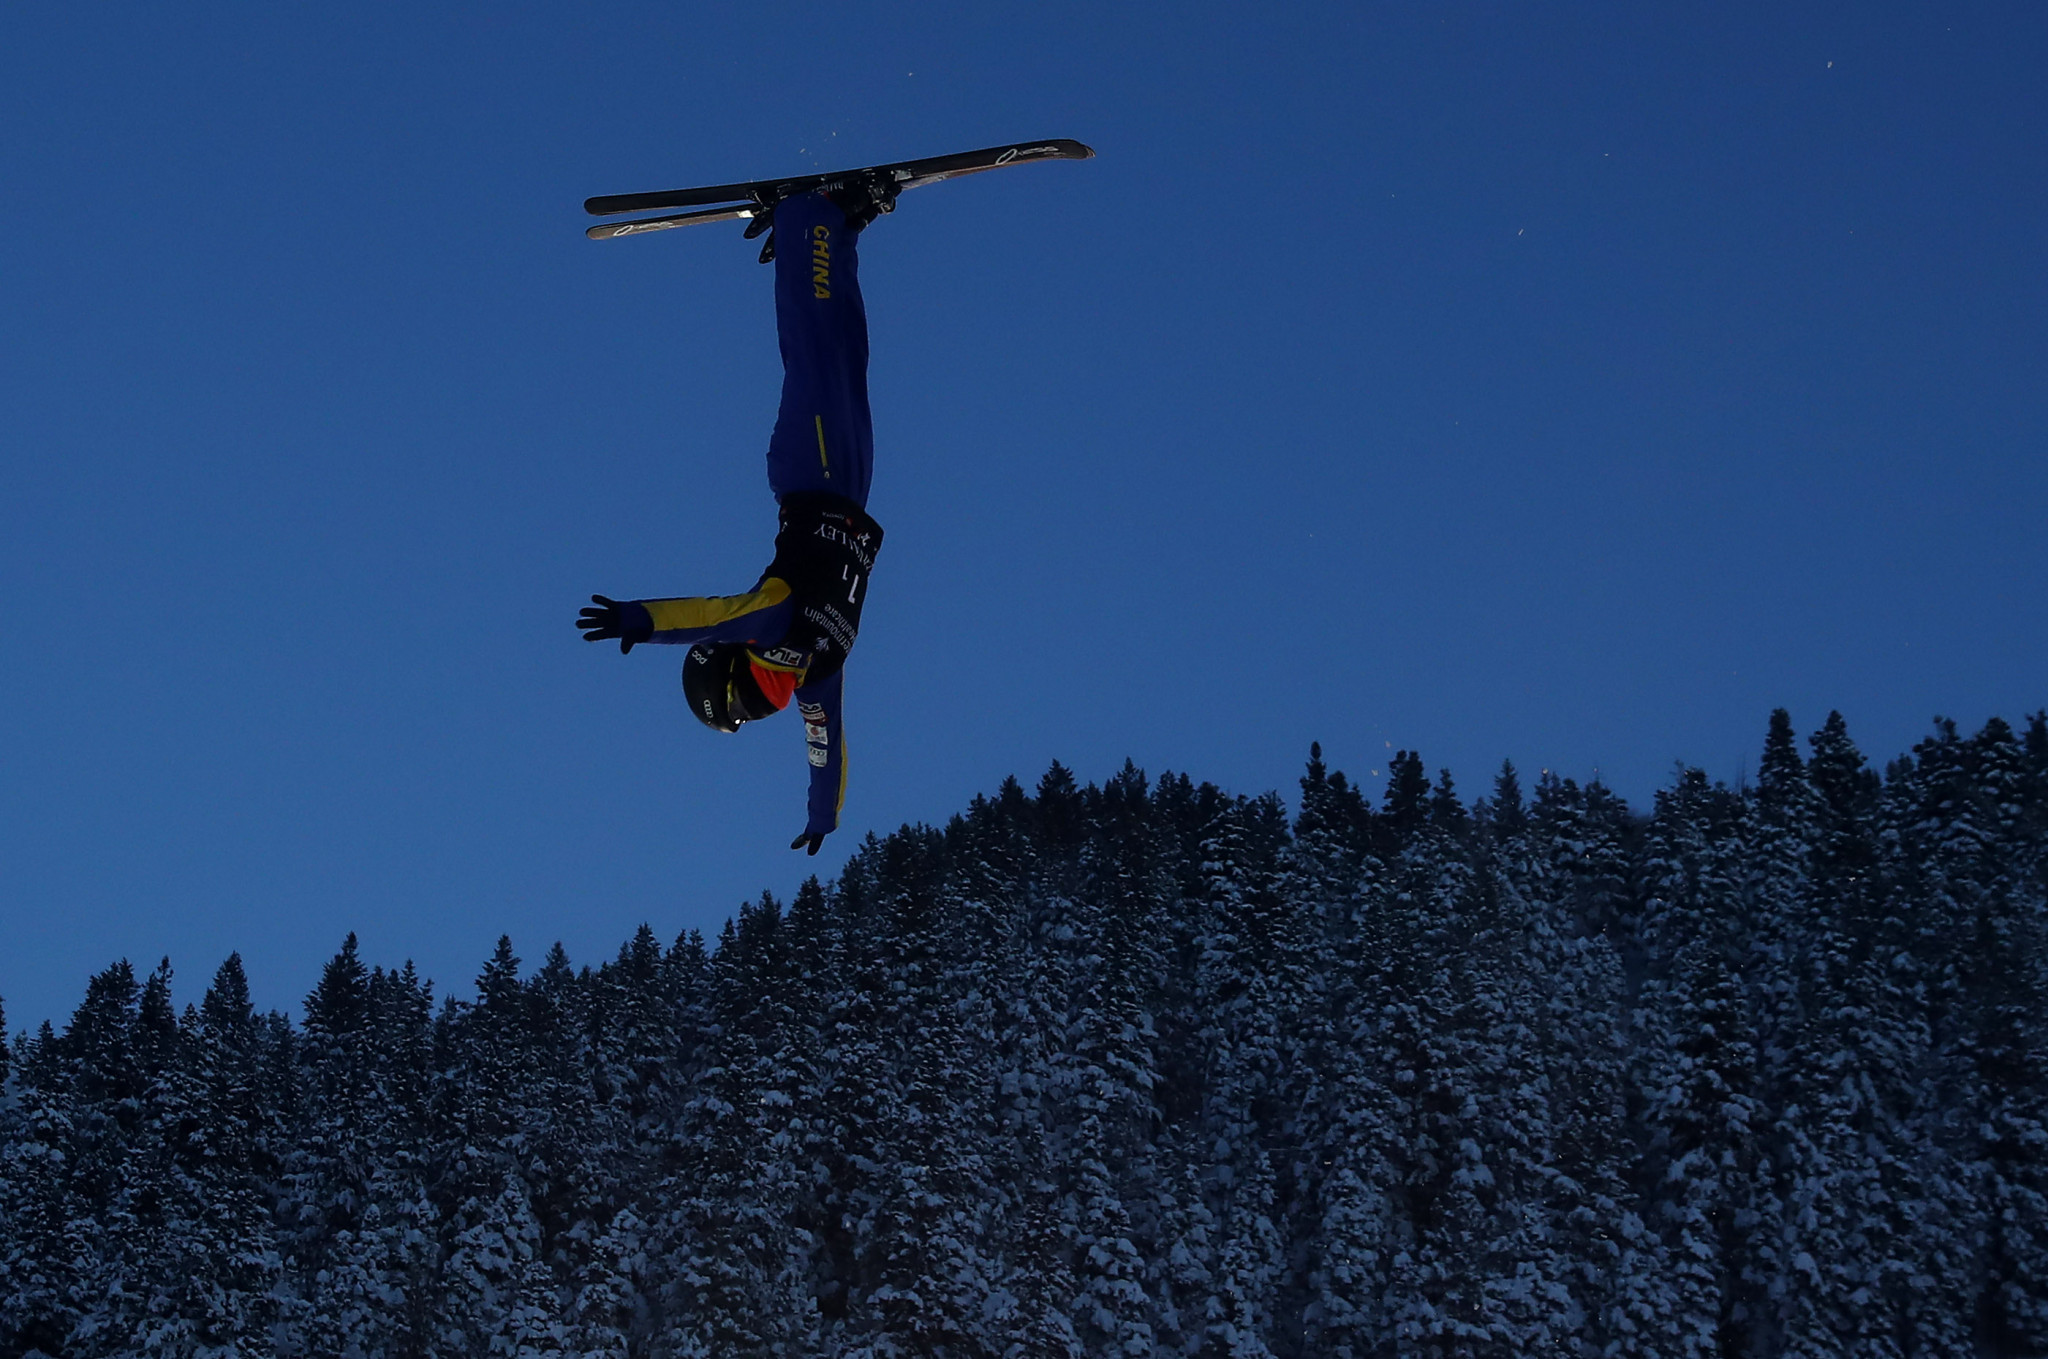 Freestyle Ski Aerials season set for takeoff in China